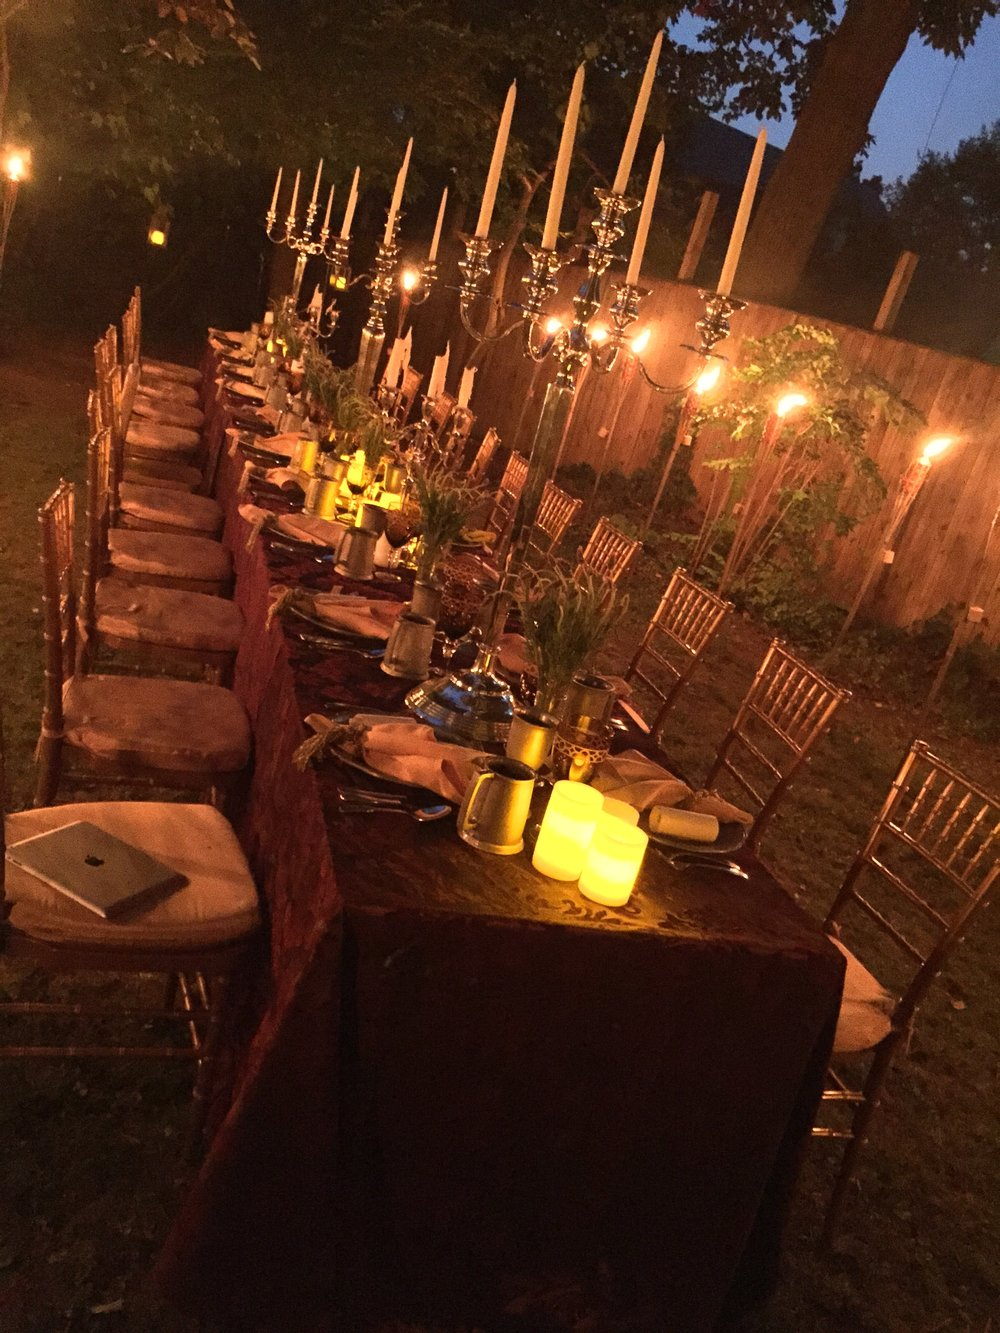 outdoor-dinner-candles.jpg